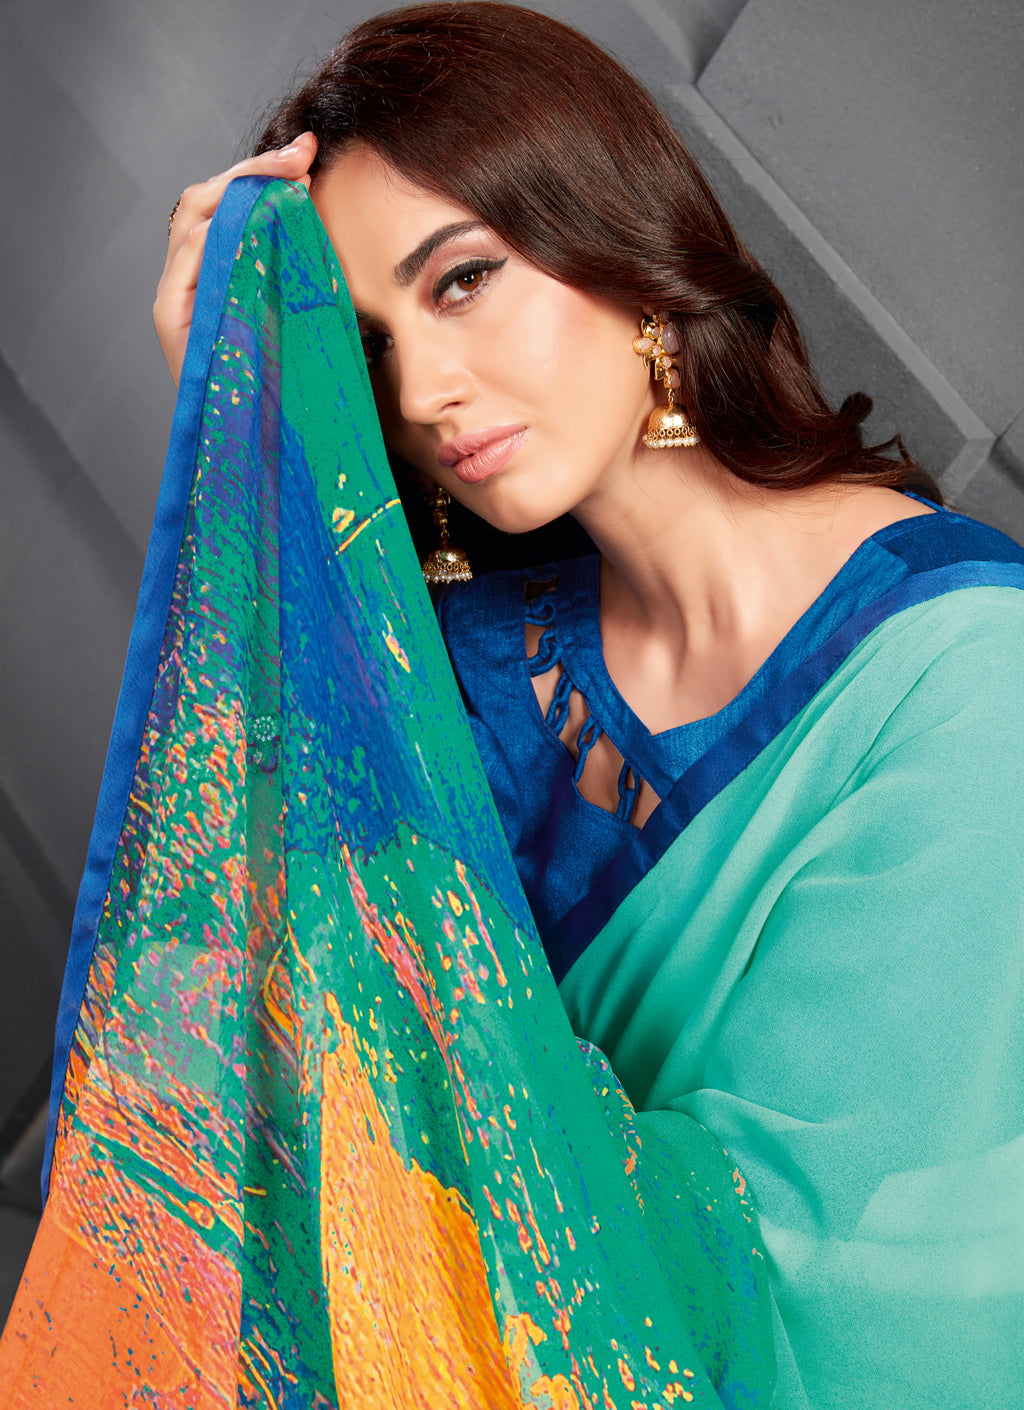 Aqua Blue Color Georgette Splendid Kitty Party Sarees NYF-6388